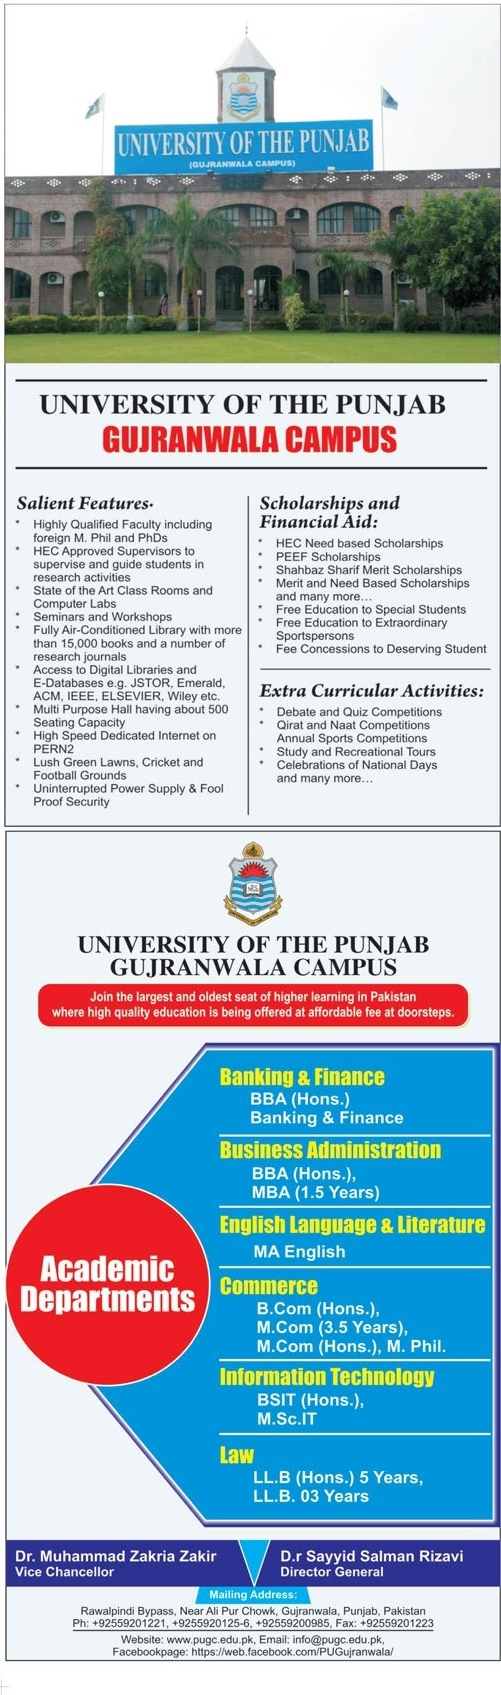 Punjab University Gujranwala Campus Admission 2018